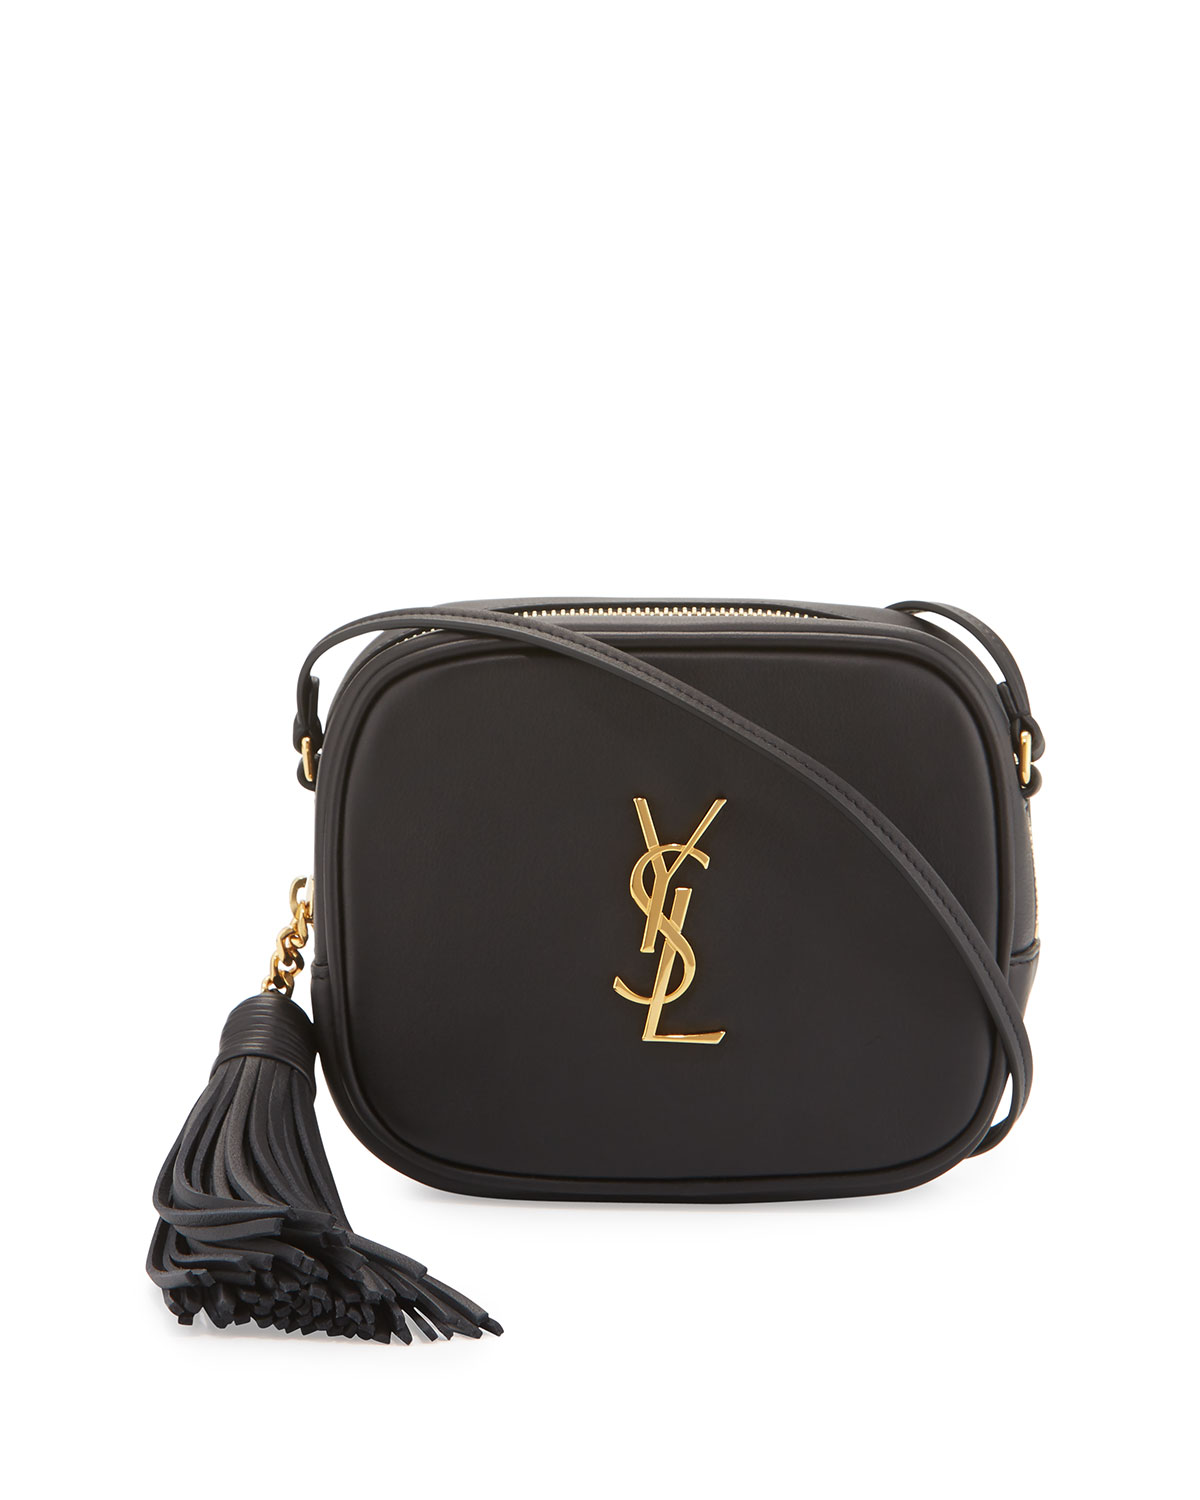 045382d7 Monogram YSL Blogger Crossbody Bag, Black